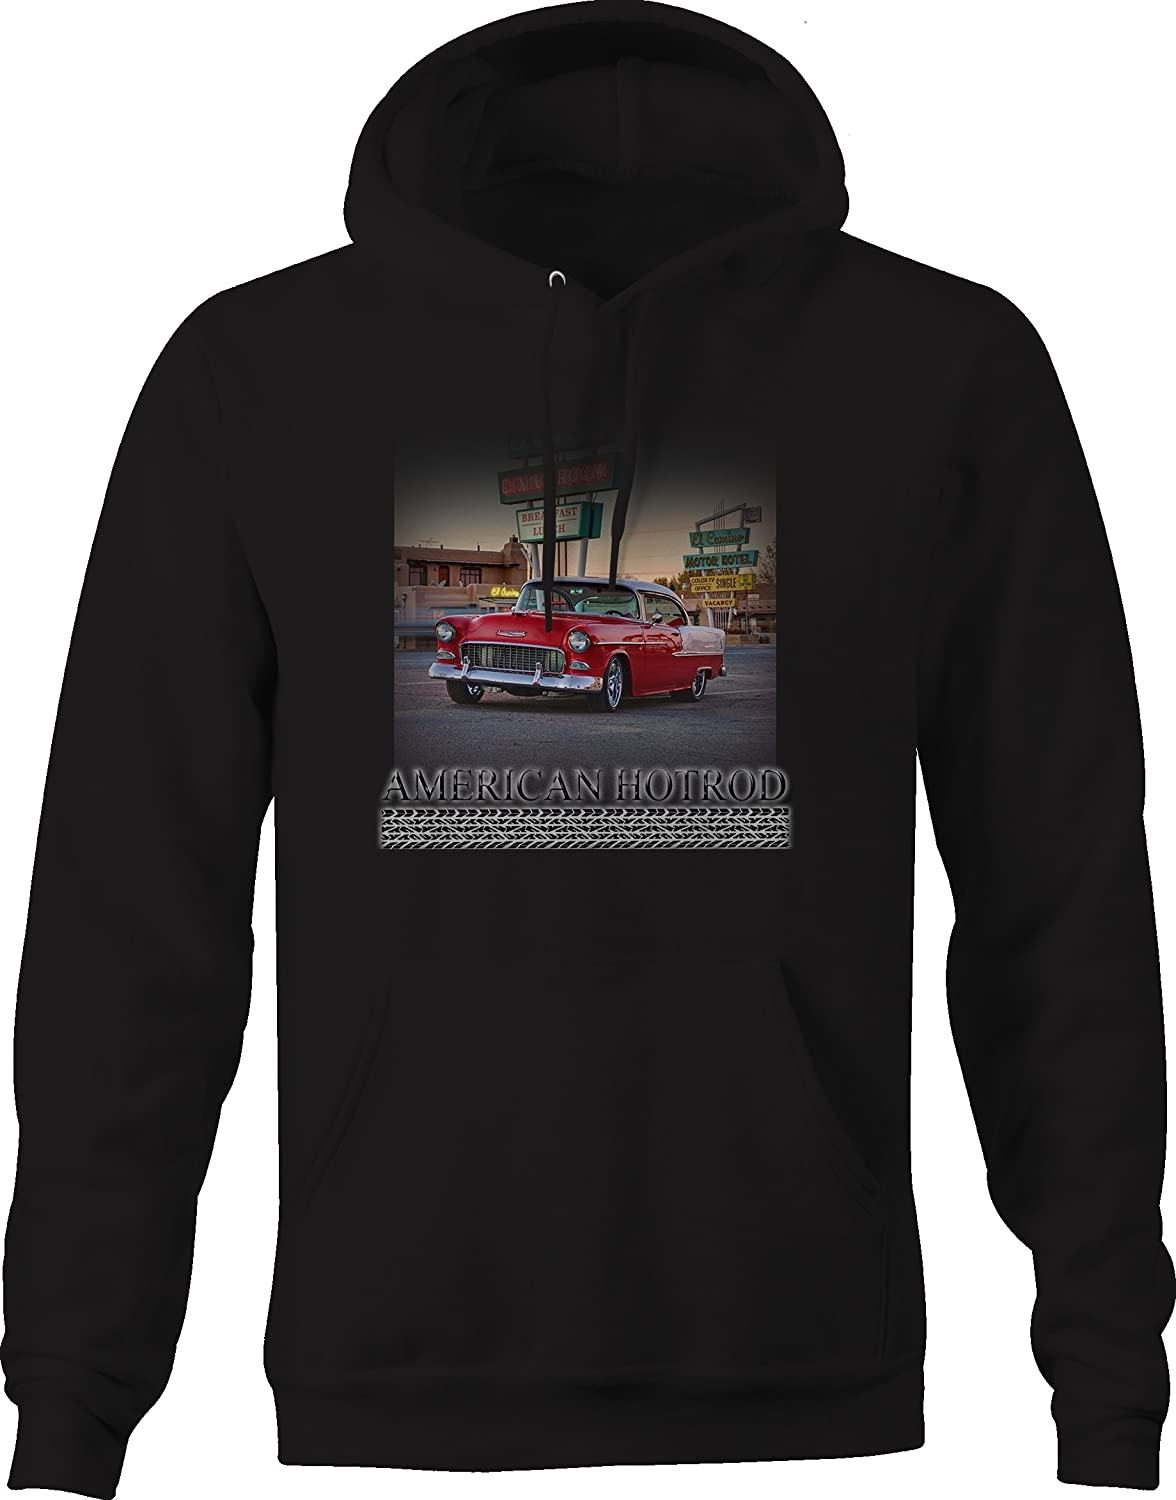 American Hotrod Muscle Car Belair Diner Motel Classic Graphic Hoodie for Men